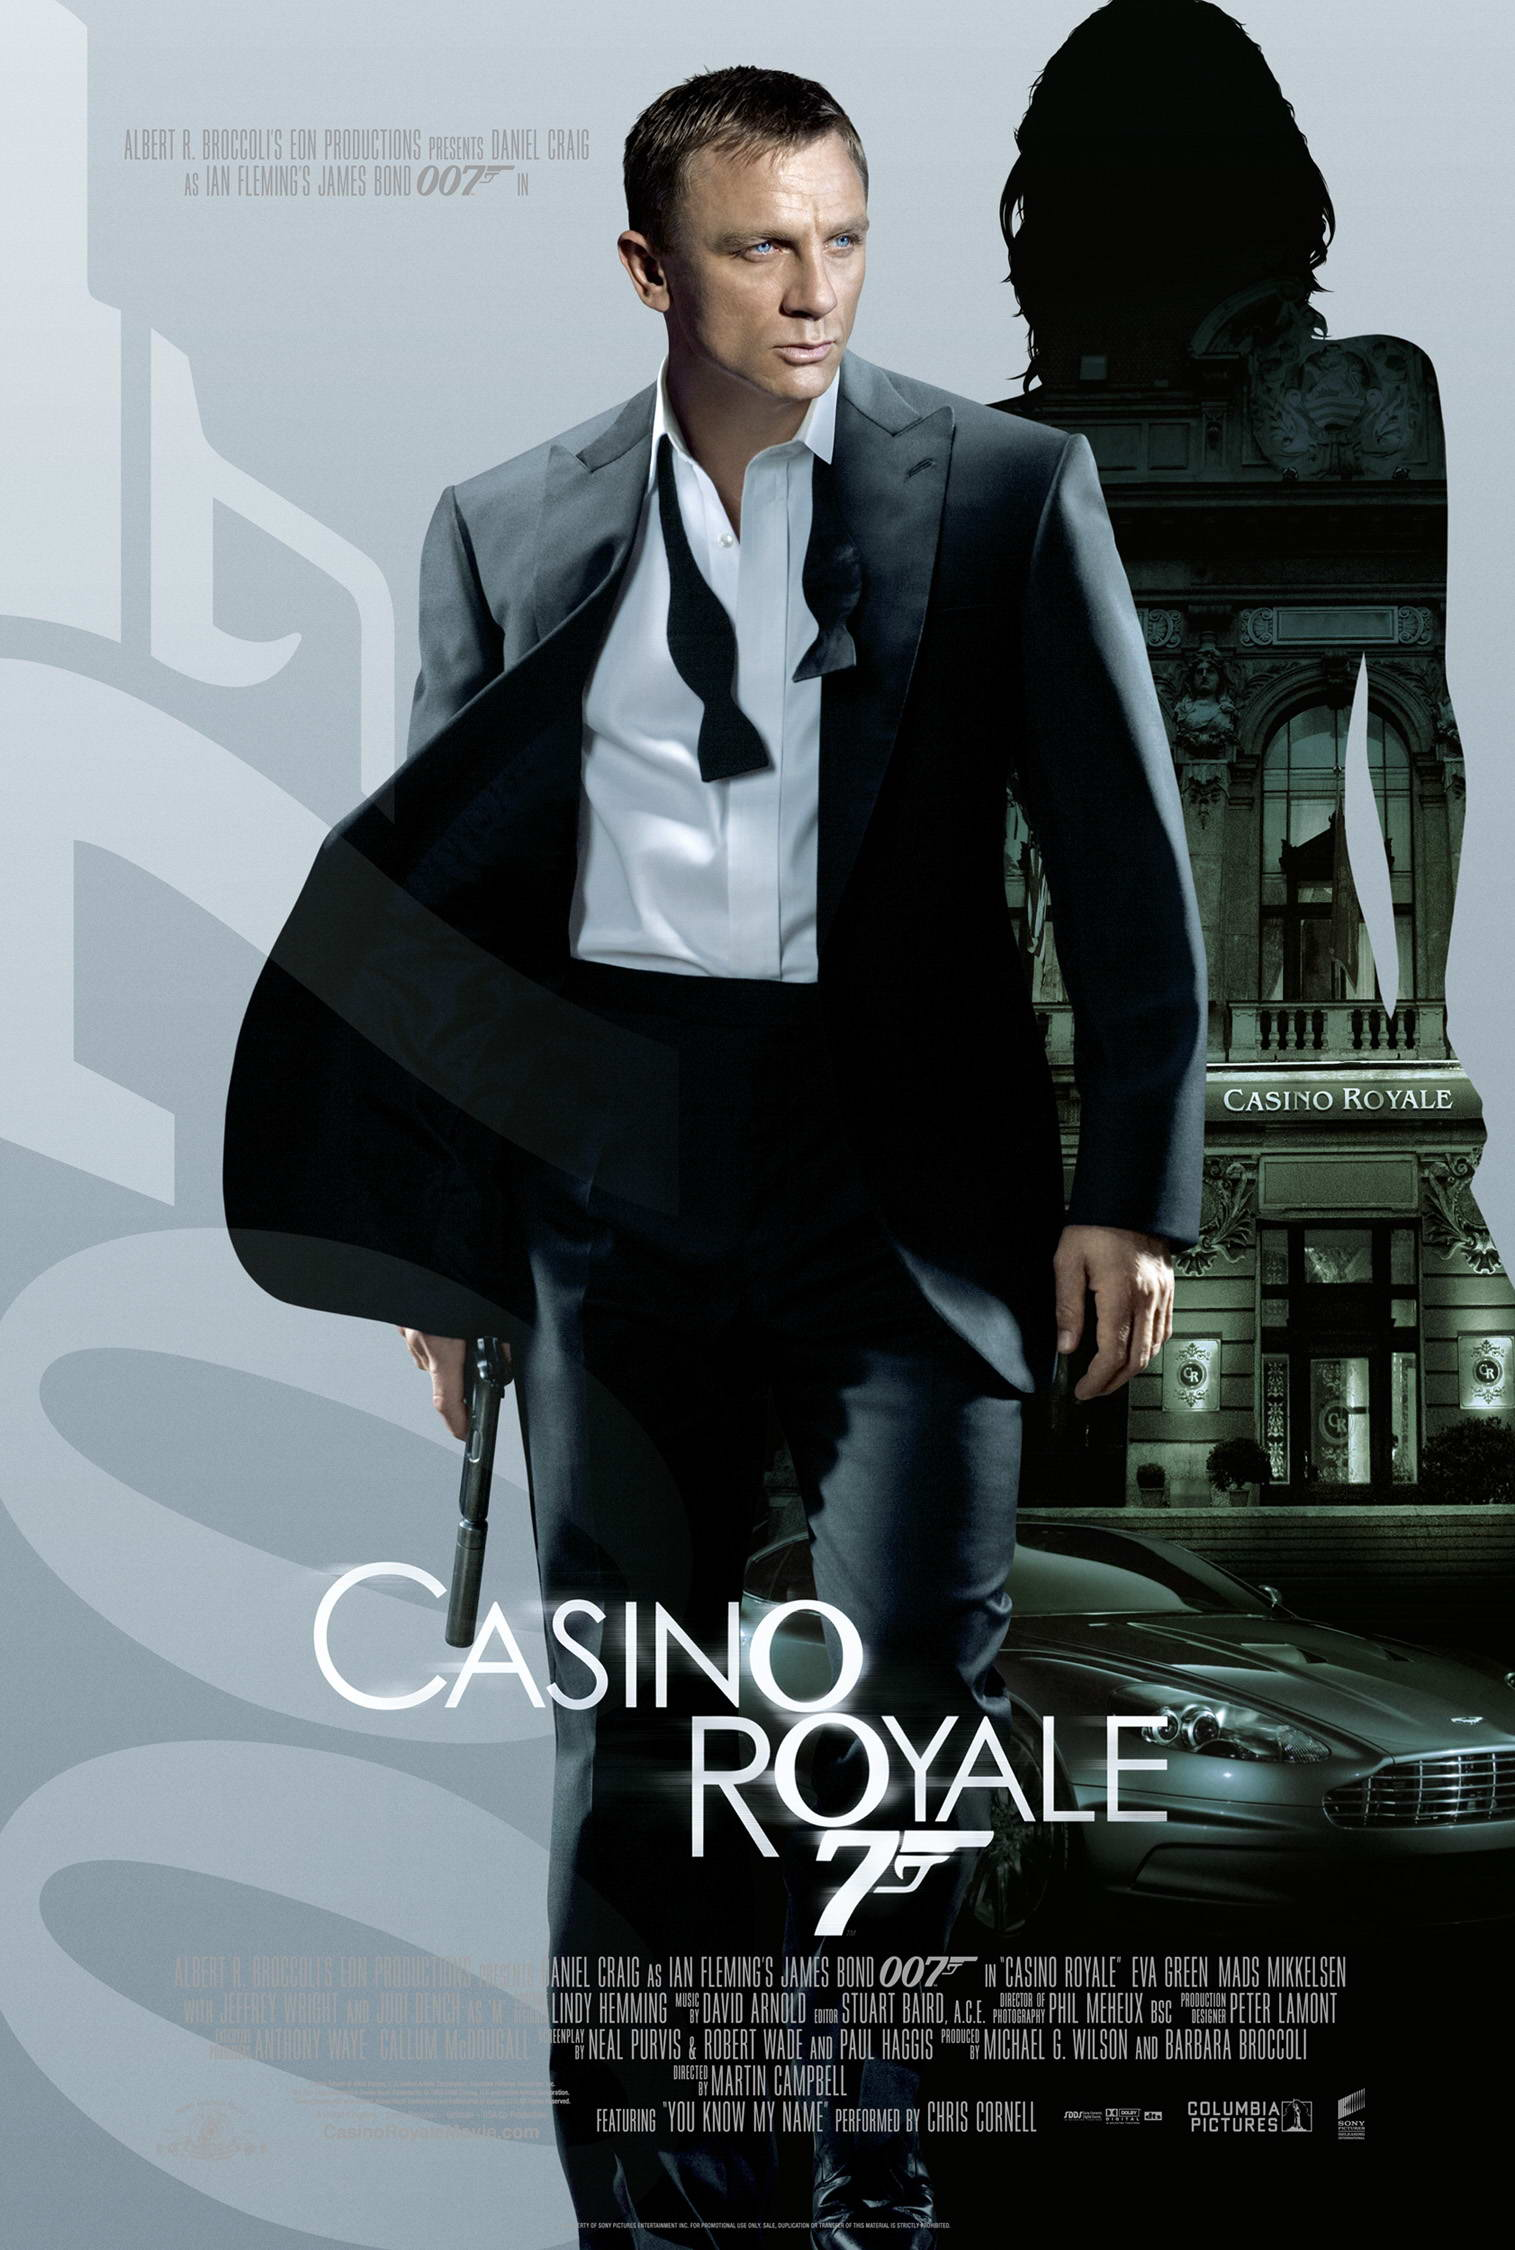 Casino royale 2006 movie review bowl games gambling lines